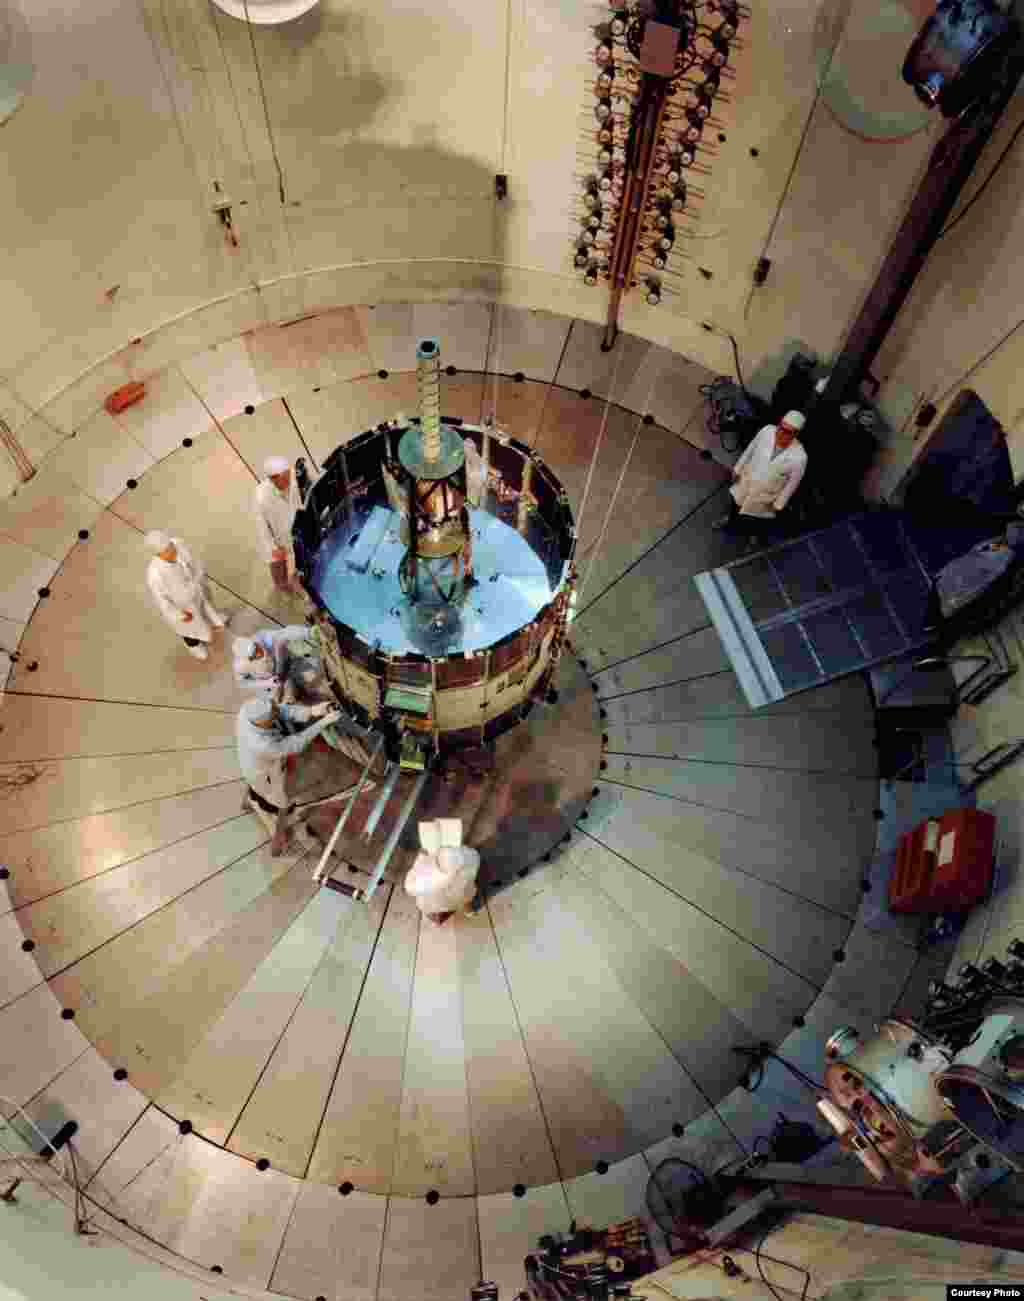 ISEE-3 in the test chamber at Cape Canaveral, Florida where the craft was launched in 1978. (Ed Grebenstein)